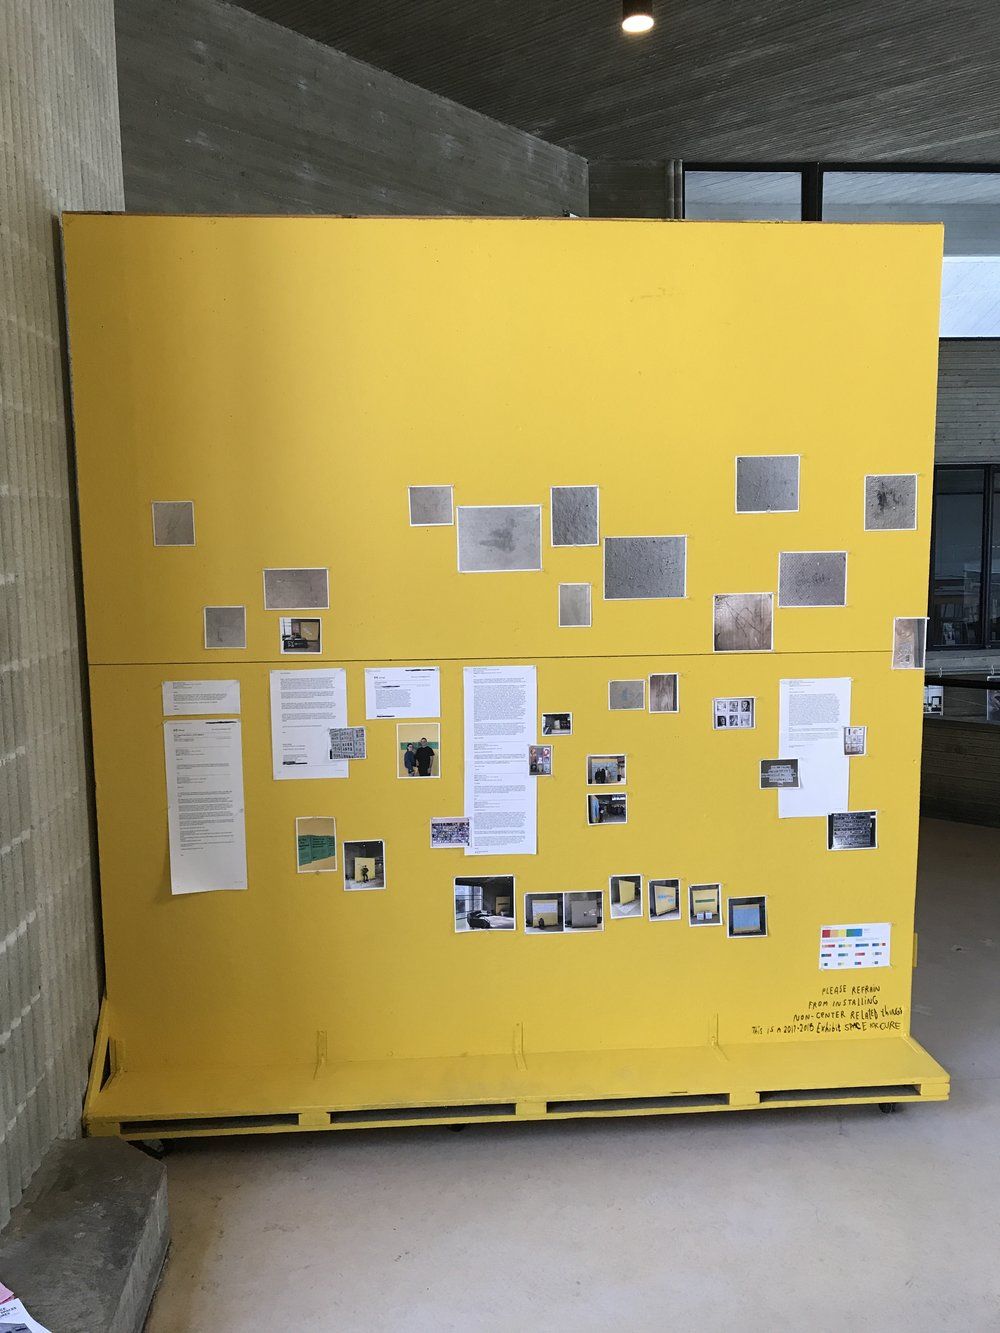 We've finally compiled the exhibition about some of the history of this cork board! It's on display now through next semester, and in January we will complete it with a little zine with the information!